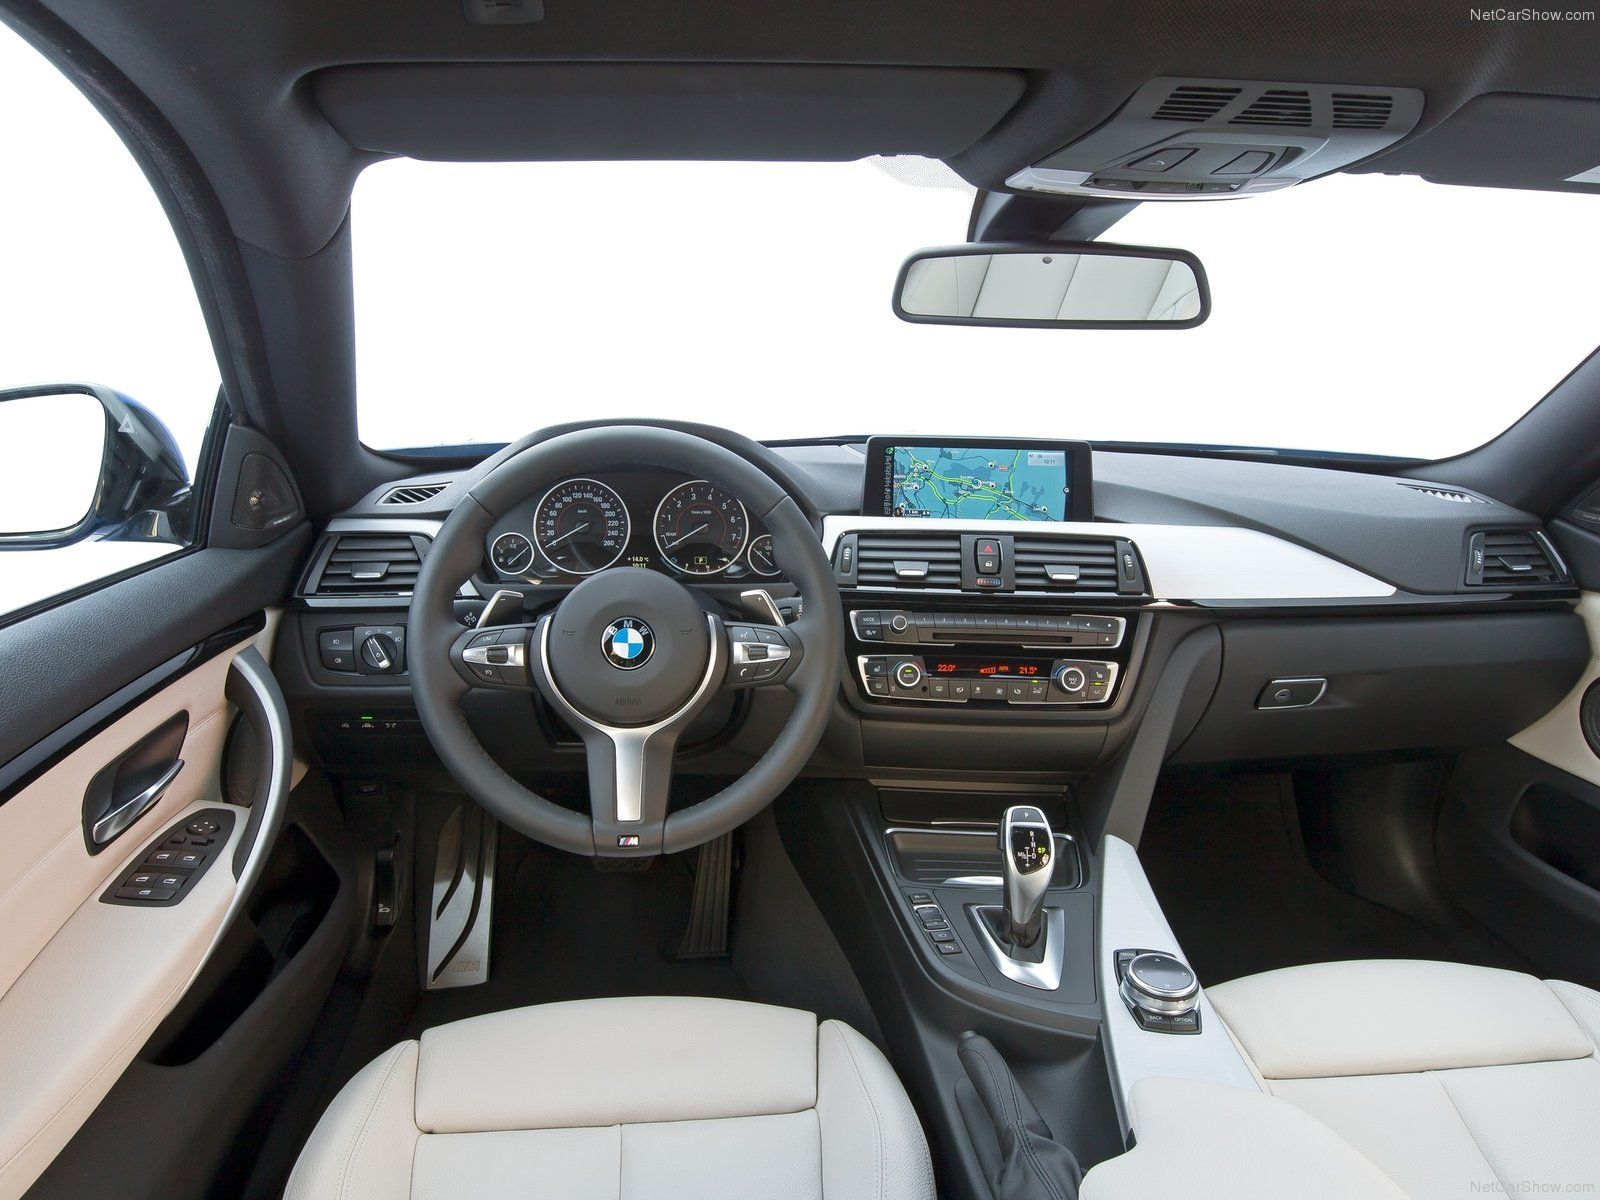 2015 Bmw 5 Series Intreior Images 2015 5 Bmw Images